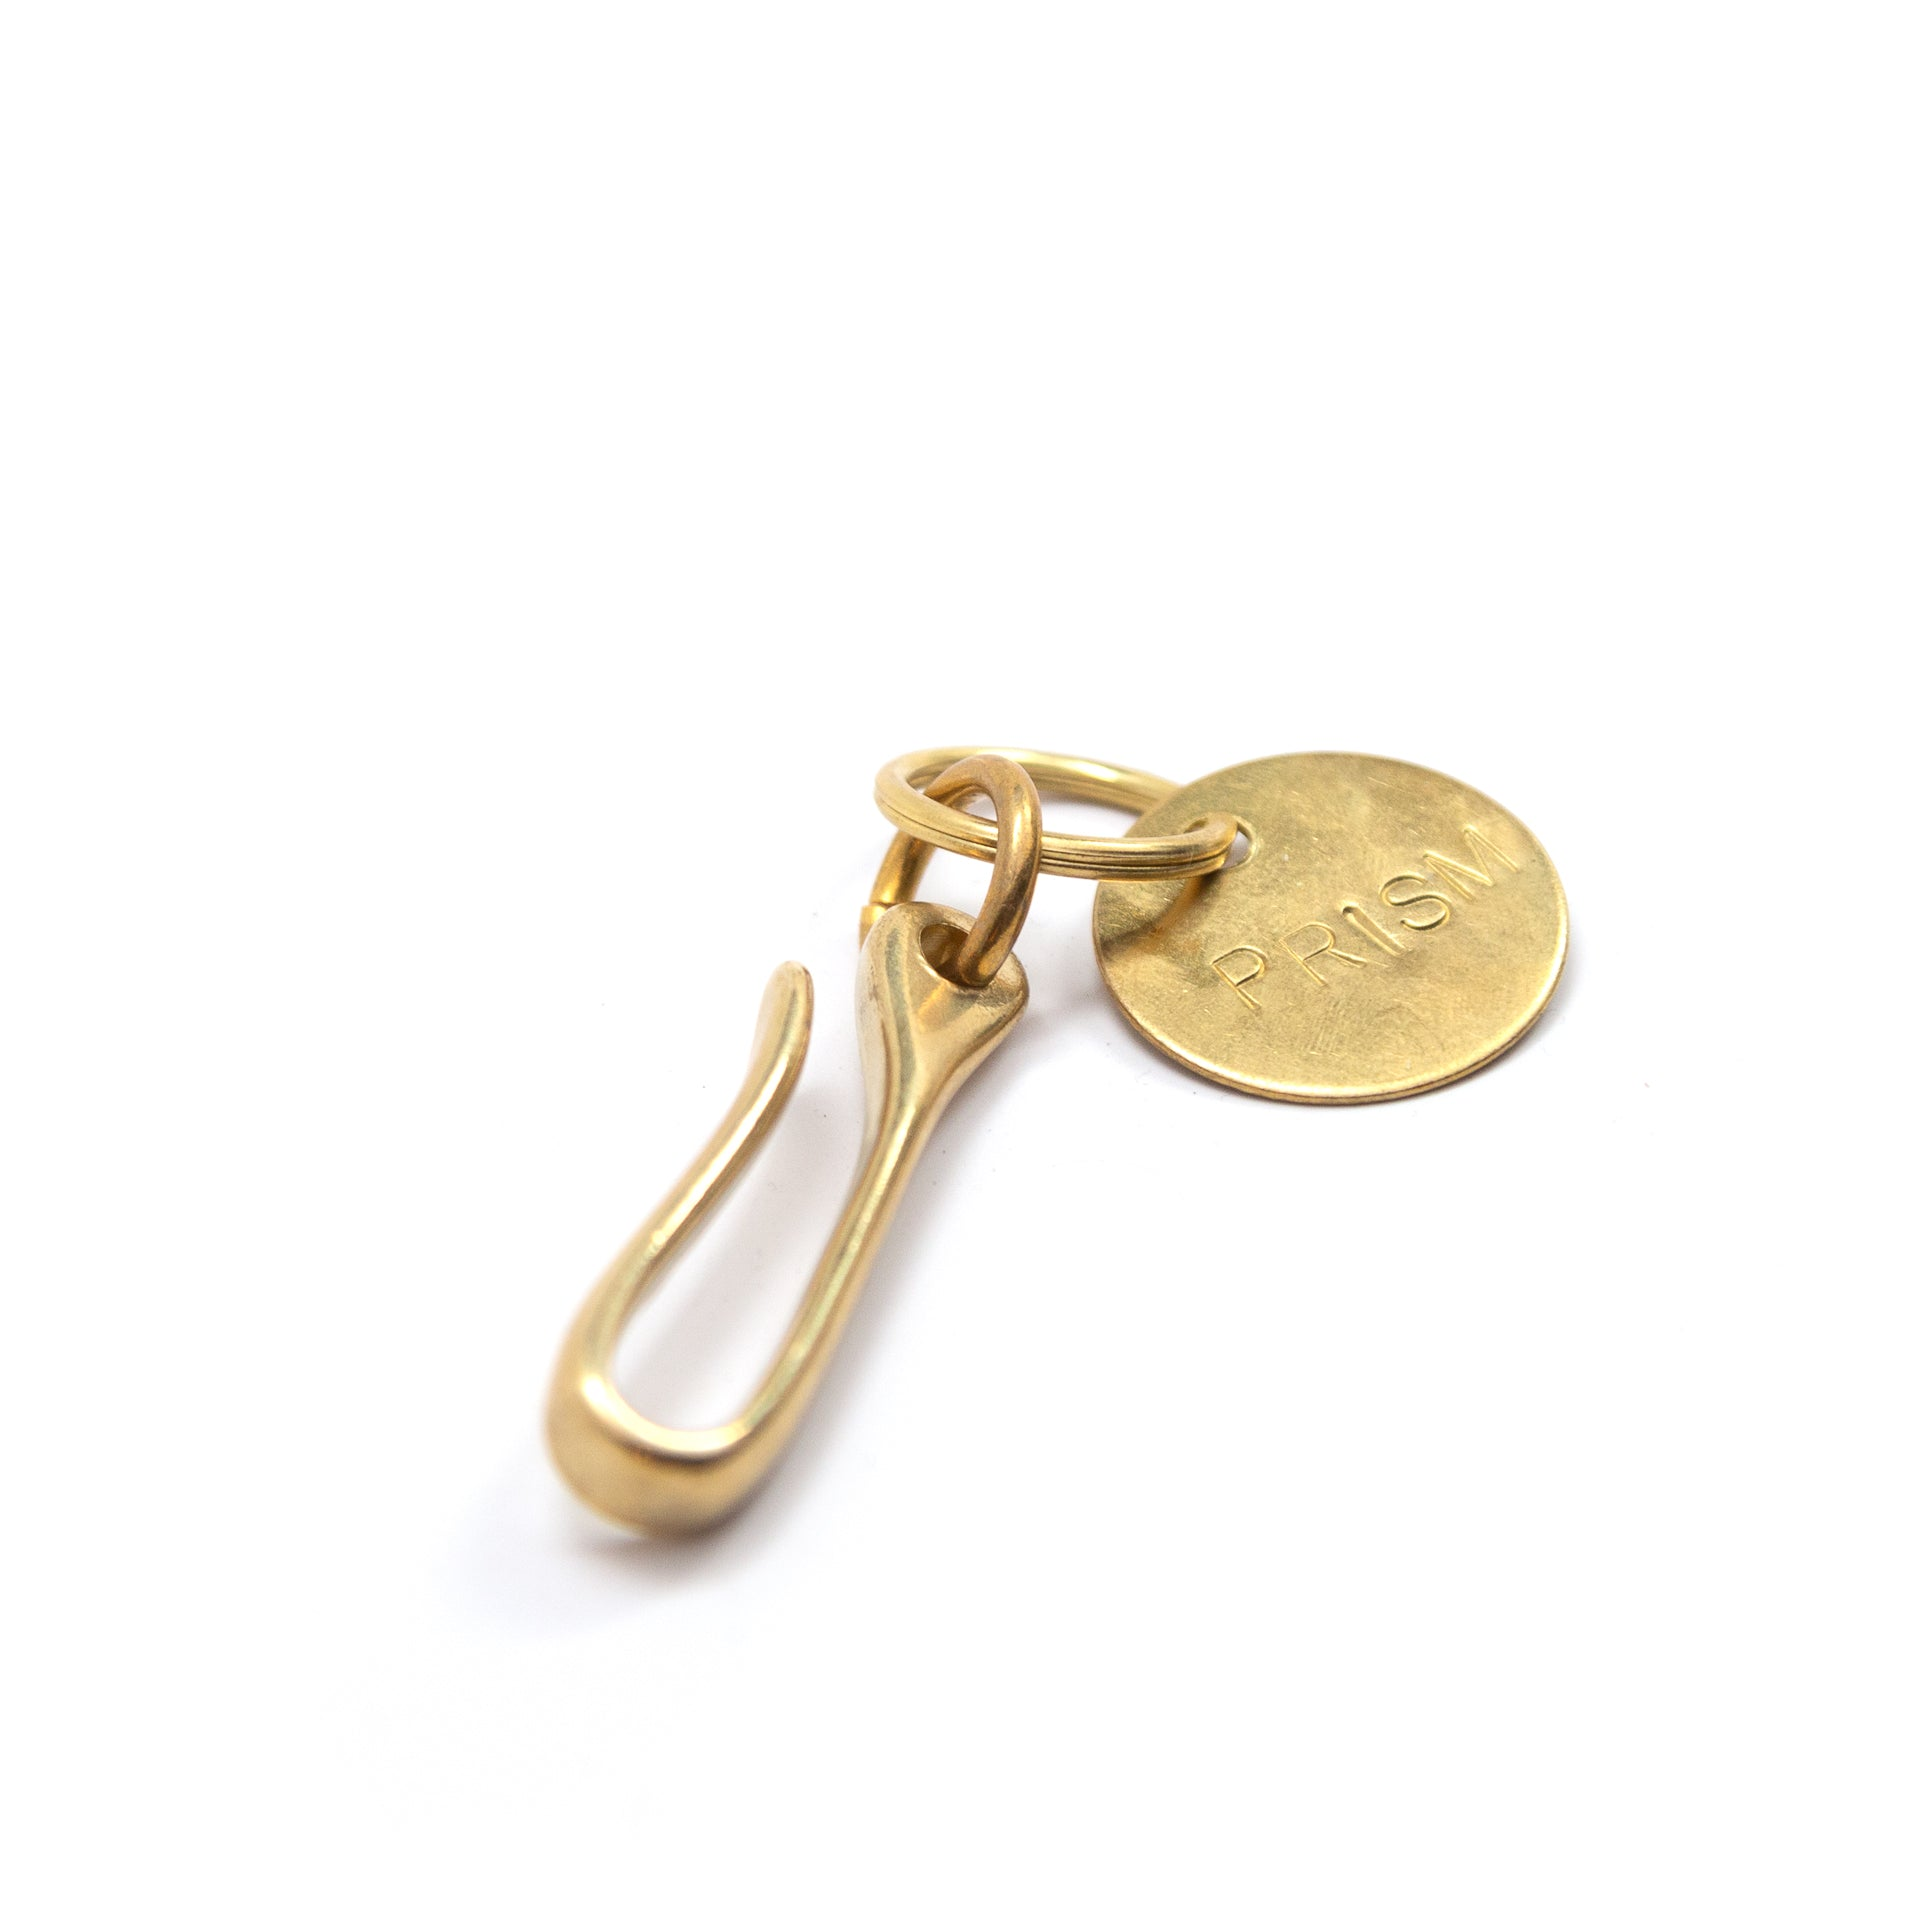 Brass Key Hook - Apparel and Accessories - Prism Supply